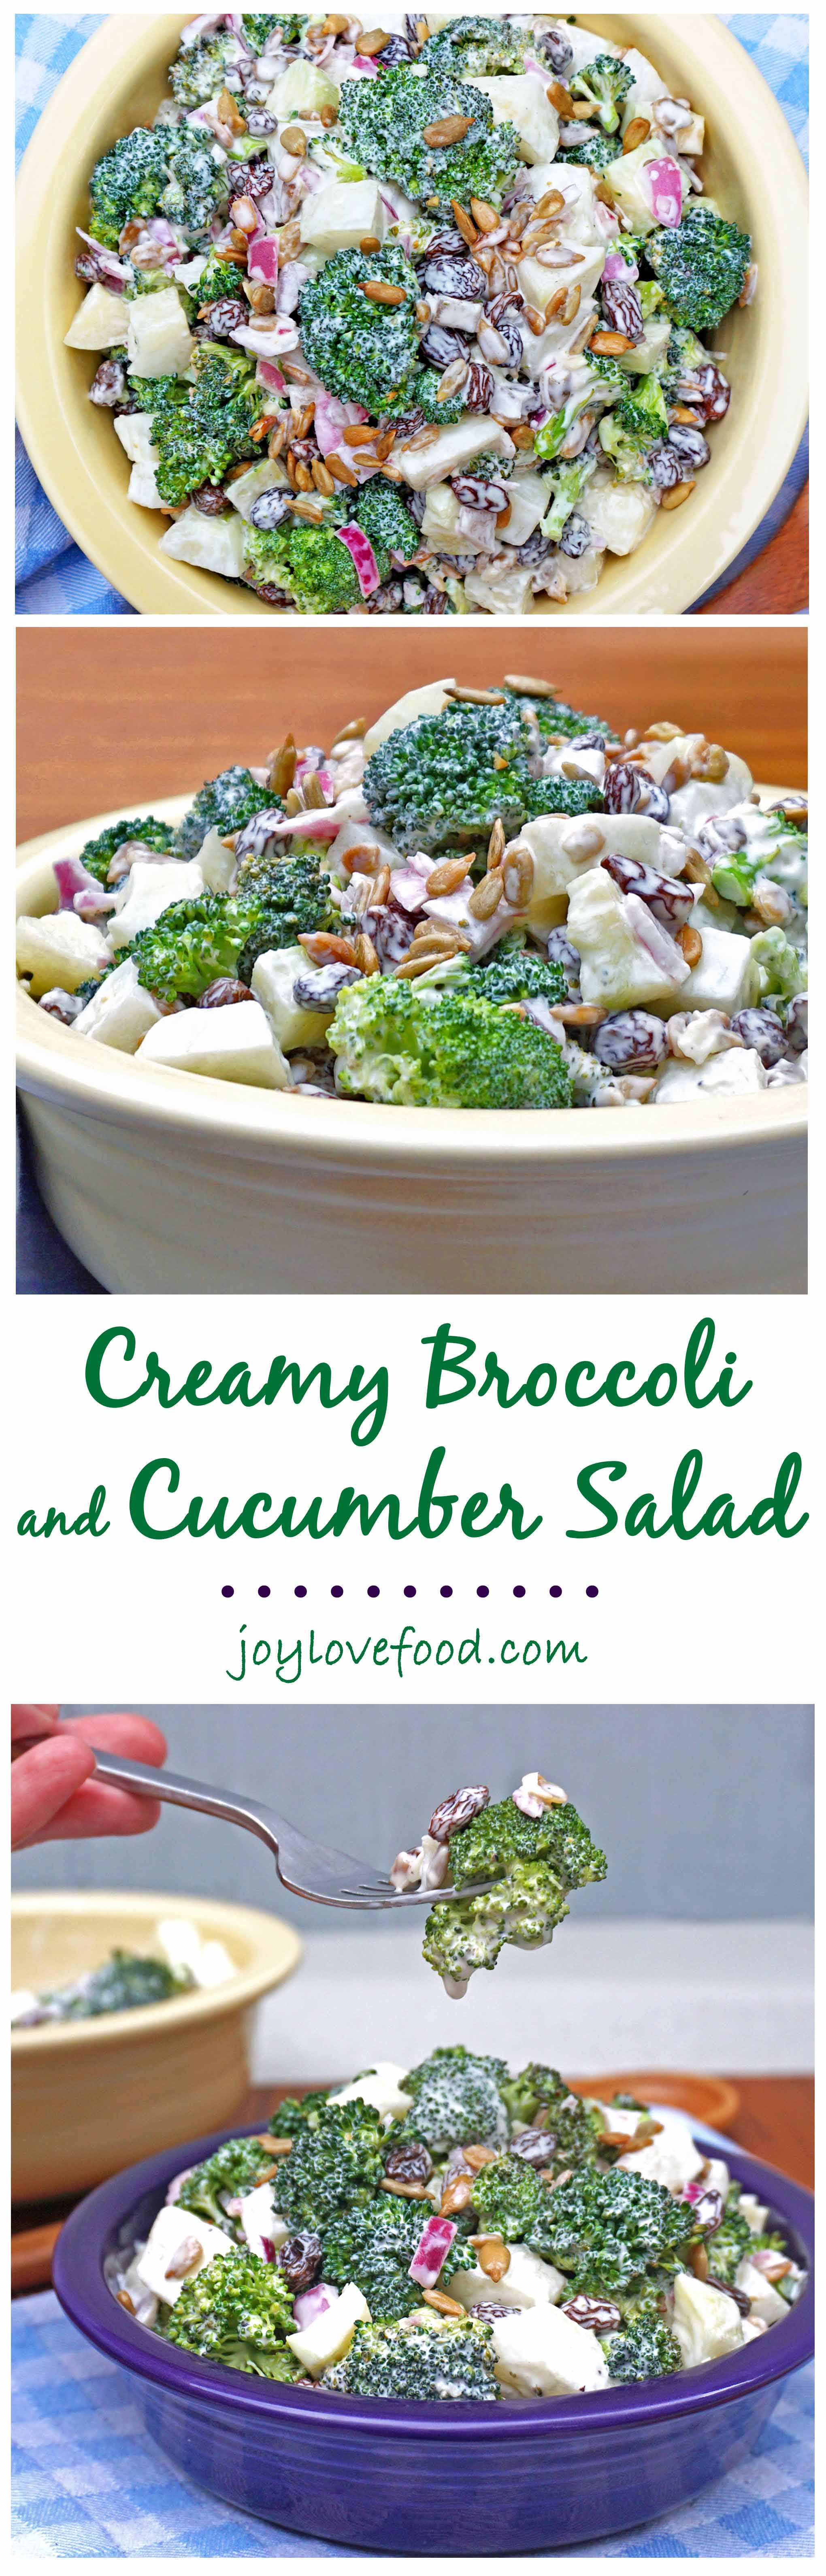 how to cook broccoli creamy